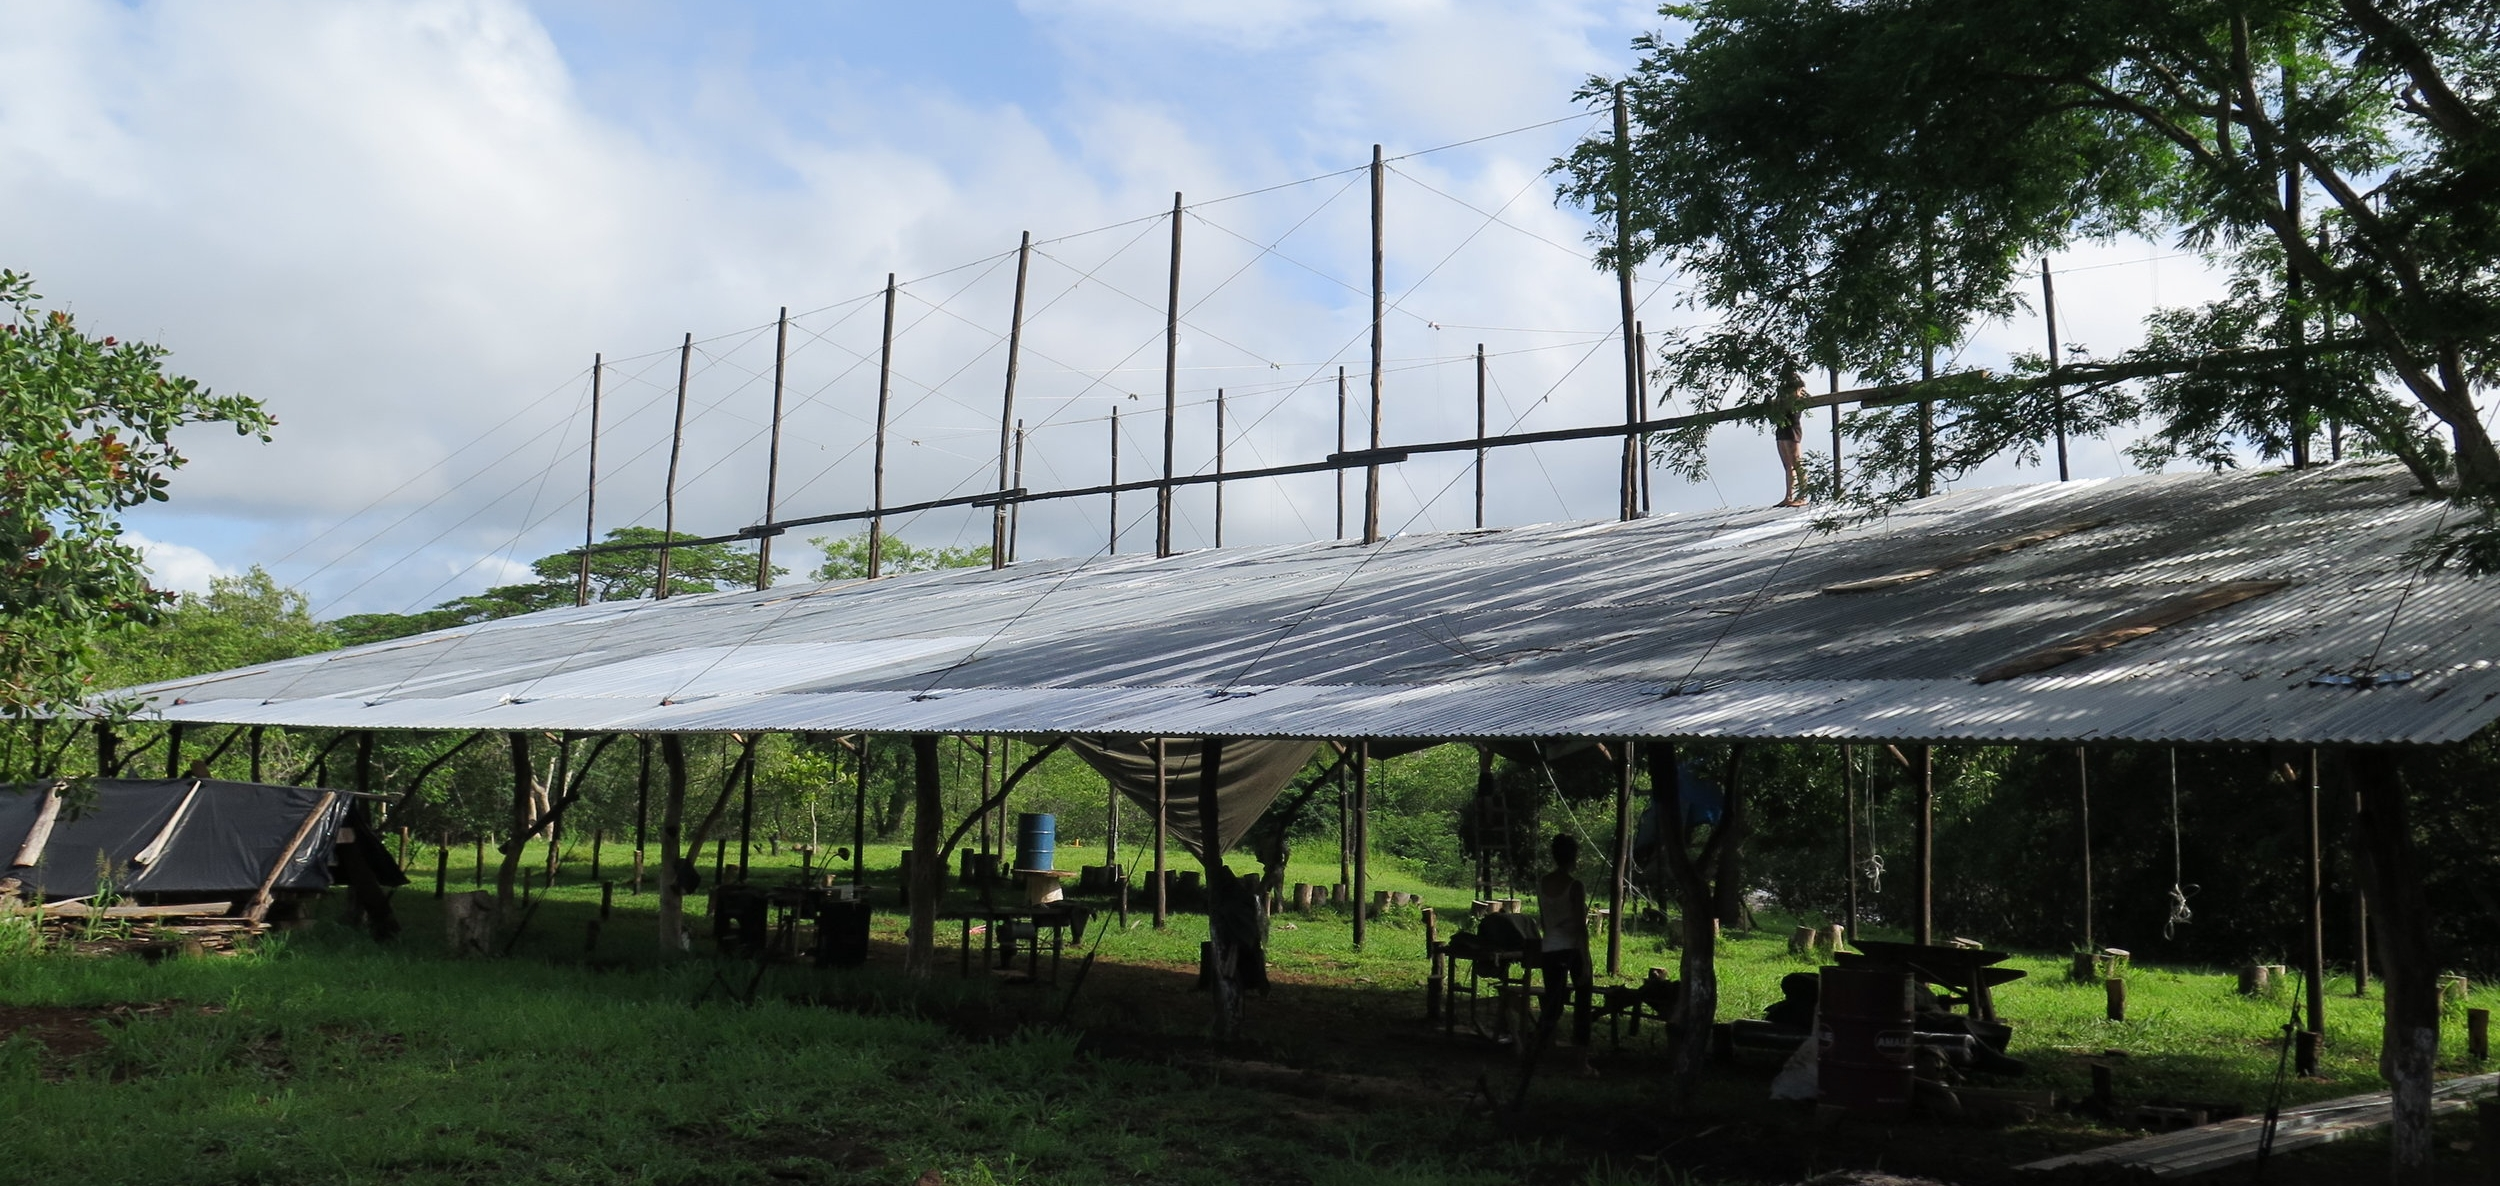 A view of the completed tin roof over what will soon be our lofting floor. All of the patterns for the elements of  Ceiba will be drawn - or lofted - full scale under this roof. Thank you to Eleanora & Mate for all of their help completing these large-scale tasks.